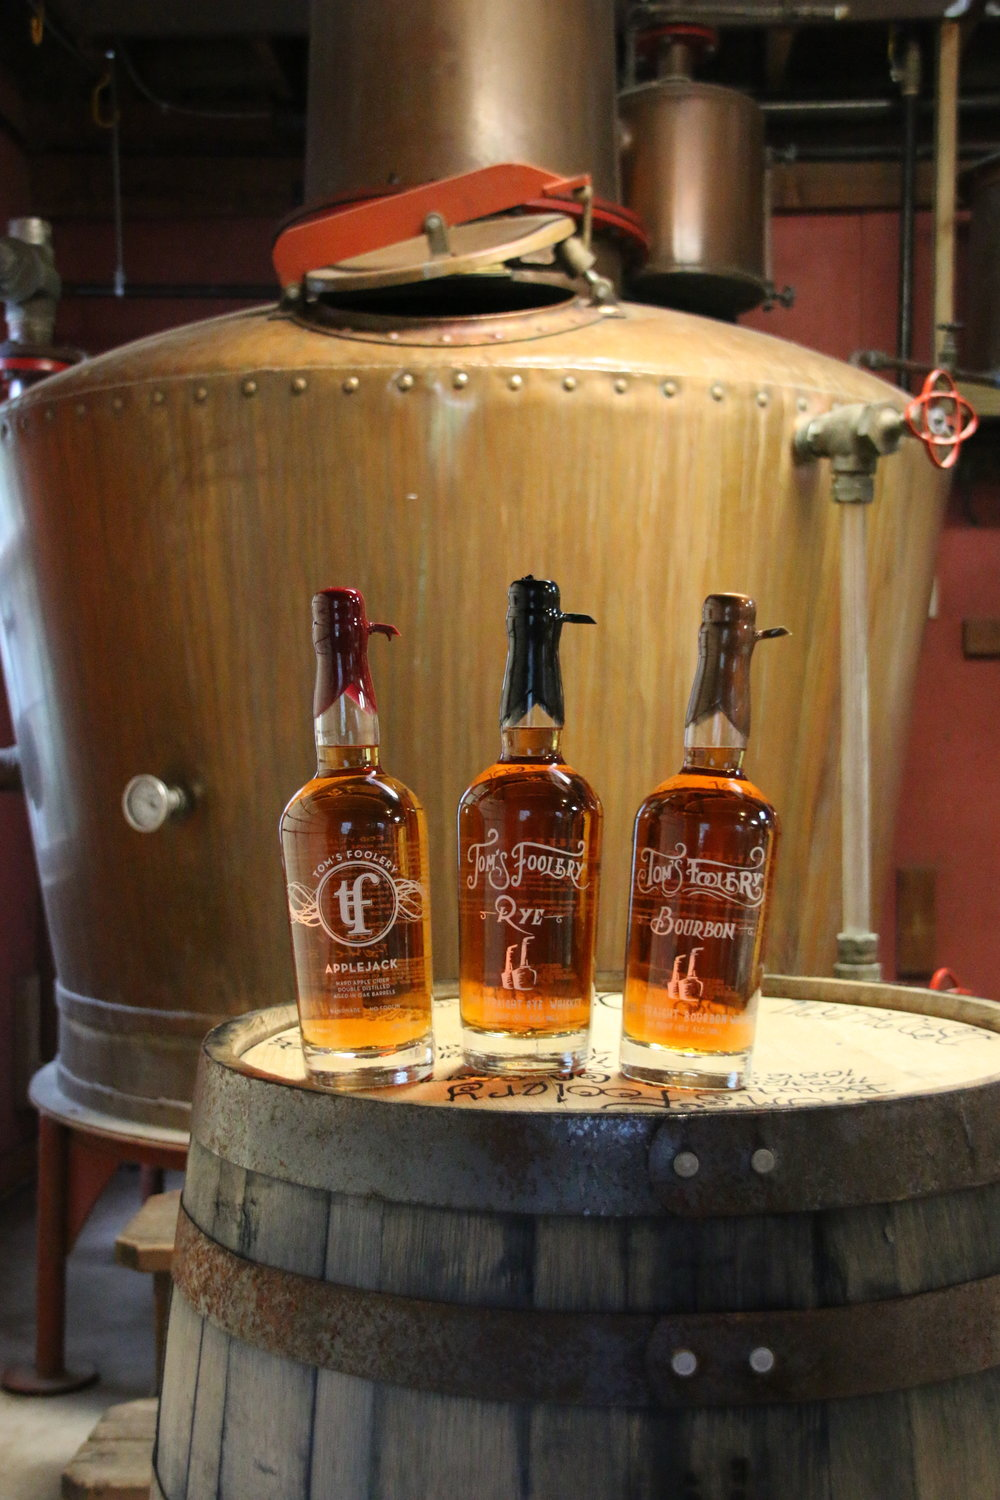 Bourbon, Rye, Applejack & Gin - Tom's Foolery began as a hobby: a barn, a still, and a family with passion for quality and tradition. Today, we are a traditional American distillery, where we make great products from scratch and share the experience with friends. All of our spirits are pot-distilled in the heart of America's Snowbelt.